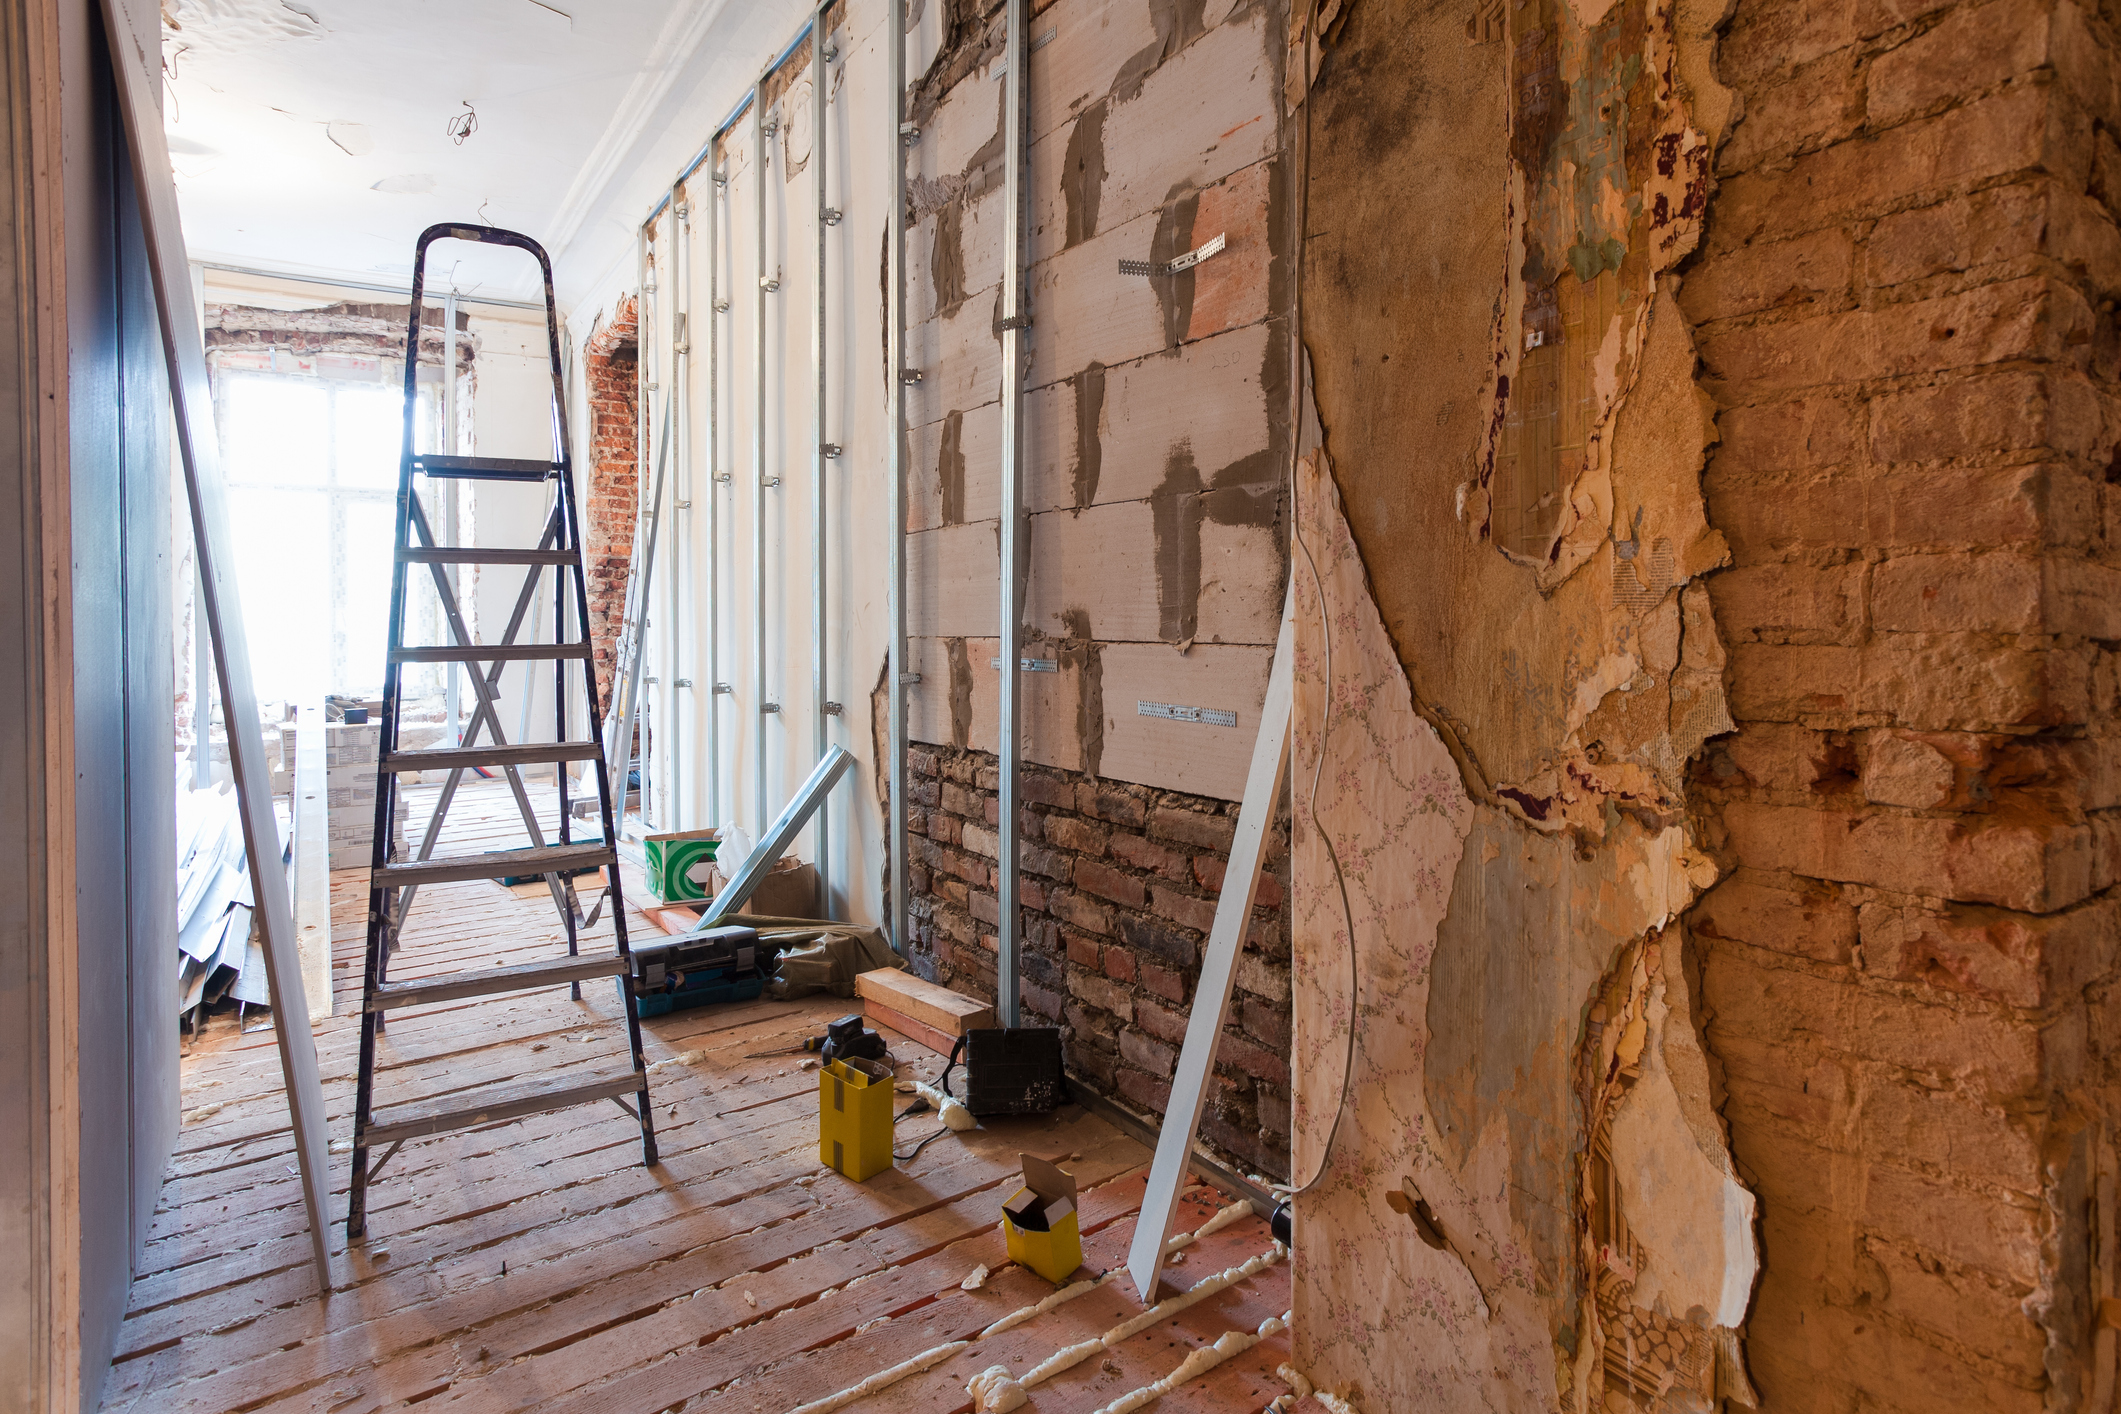 Breathing new life into old bricks…. - Our end to end renovation services include design services, planning application support, structural work, roofing, windows, stud work, electrical, carpentry, plumbing and bathroom fitting. Our team will focus on delivering your desired outcome and vision for your property.